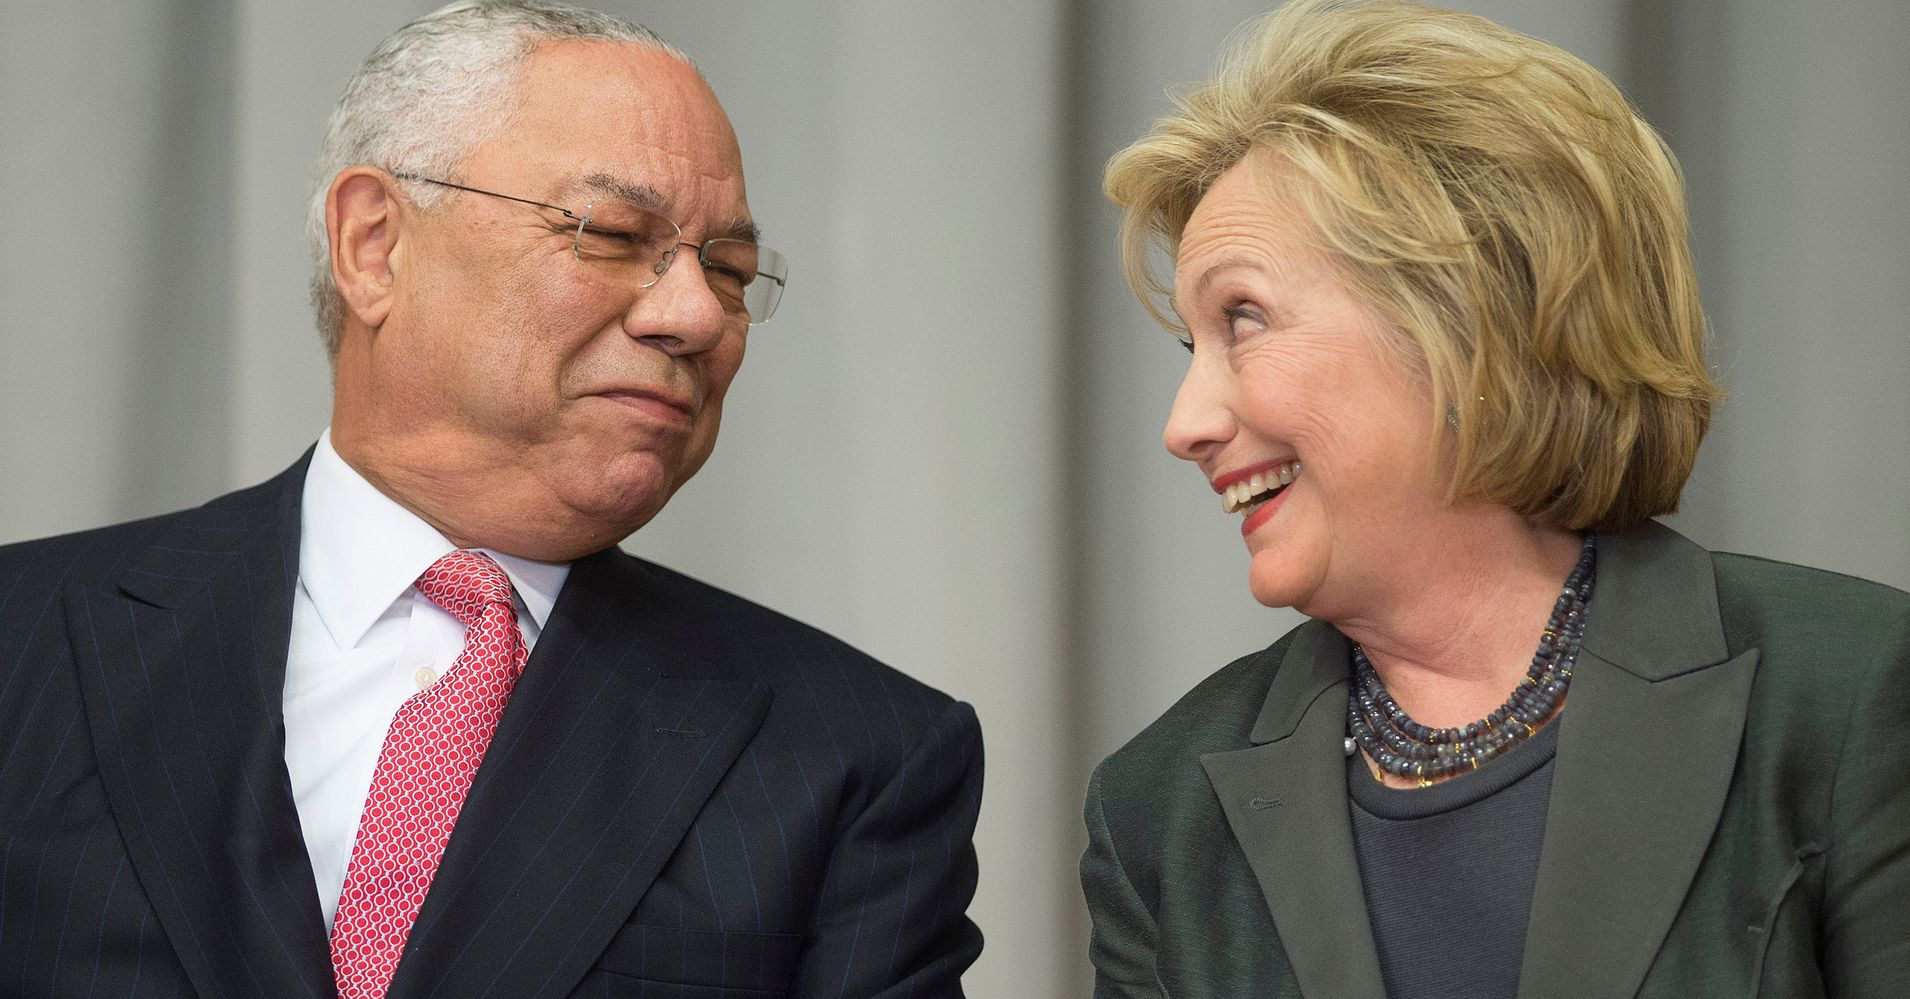 Colin Powell Told Hillary Clinton To Be Very Careful If She Used A Blackberry For Email Huffpost